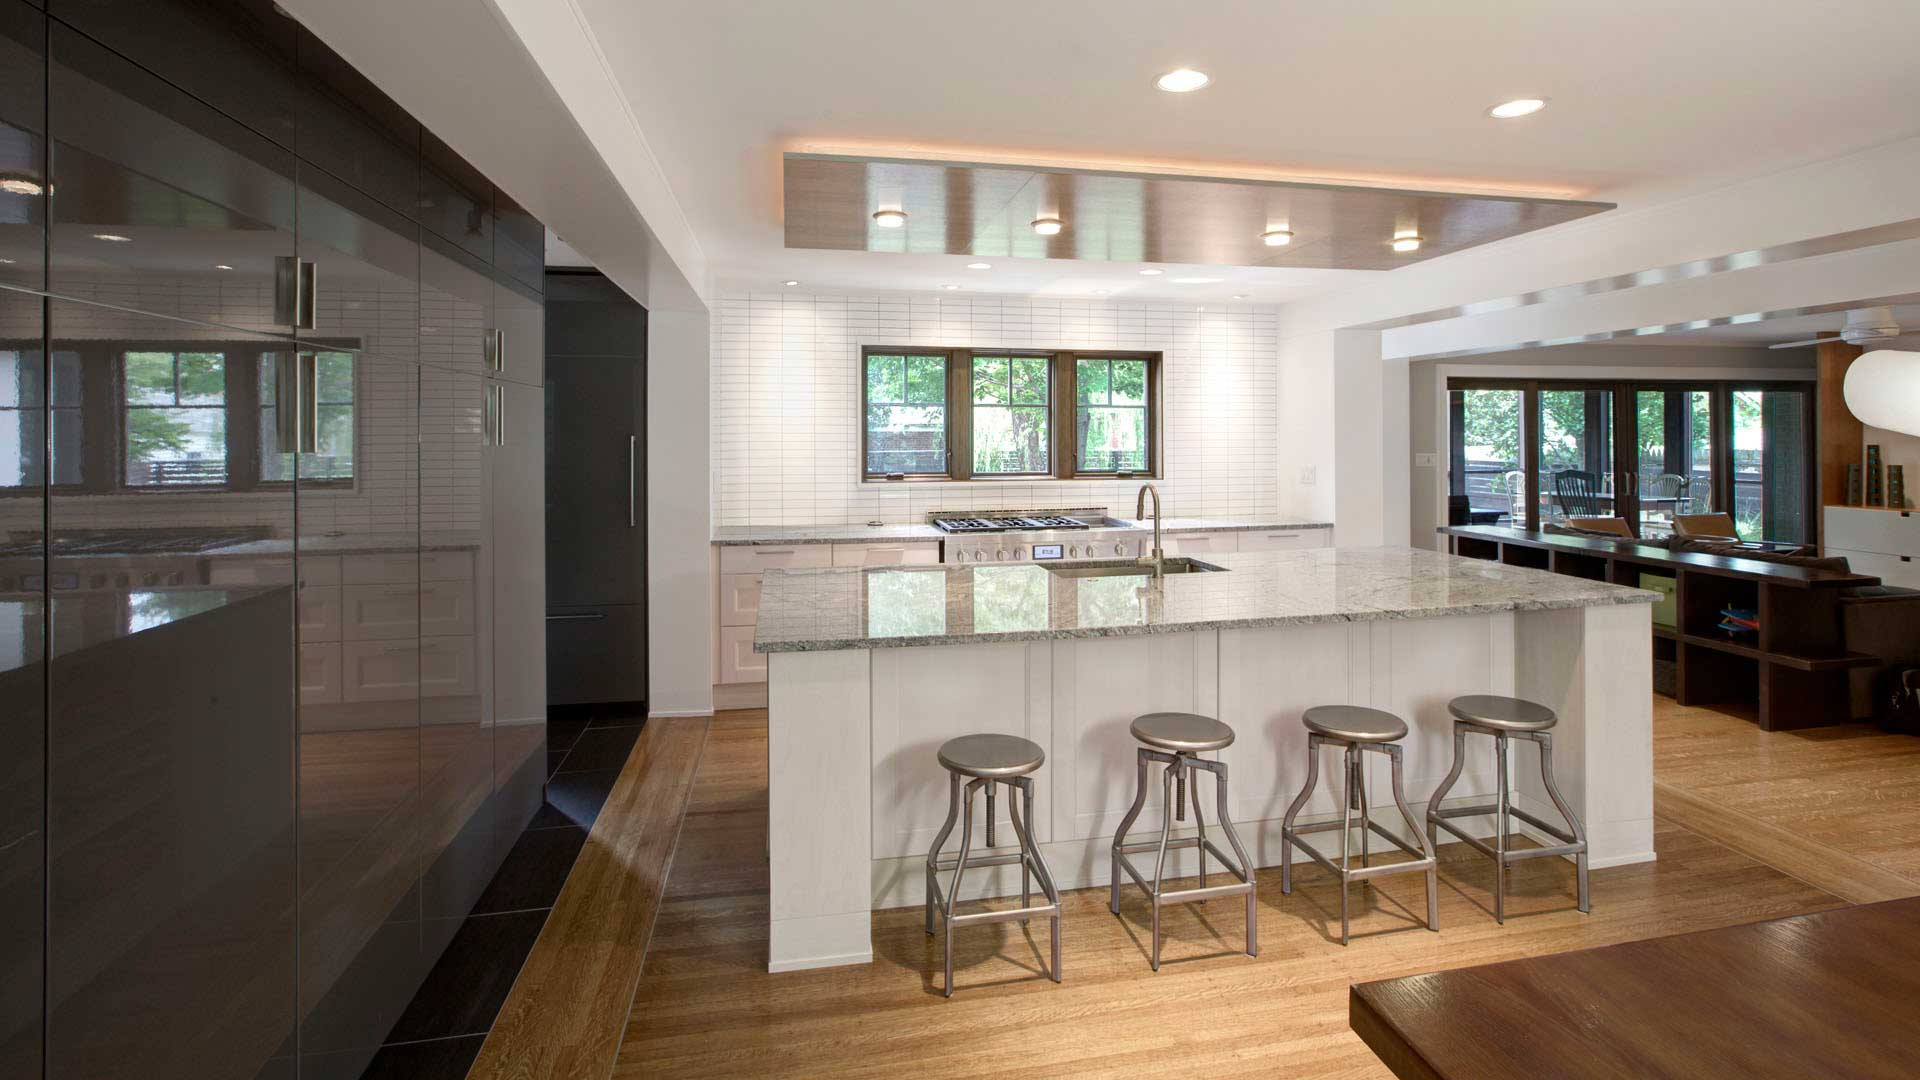 New opened-up kitchen features white and gray IKEA cabinets artfully integrated into the overall architectural solution. Oak ceiling cloud floats over island and incorporates perimeter lighting - Butler Tarkington Modern Tudor - Indianapolis, IN